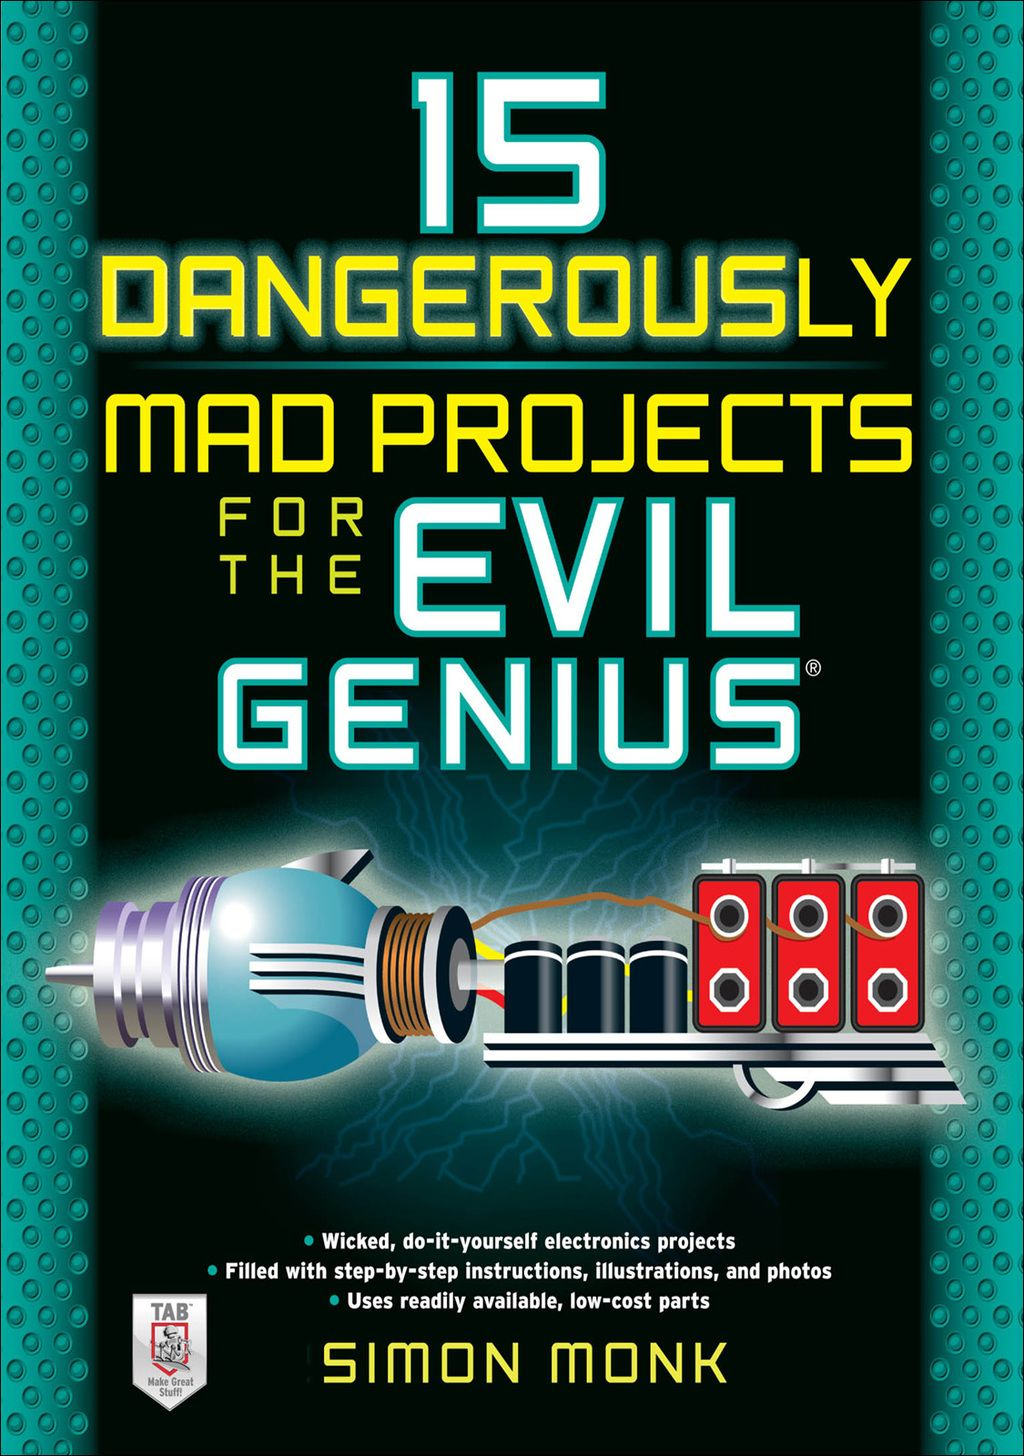 15 Dangerously Mad Projects For The Evil Genius  Ebook